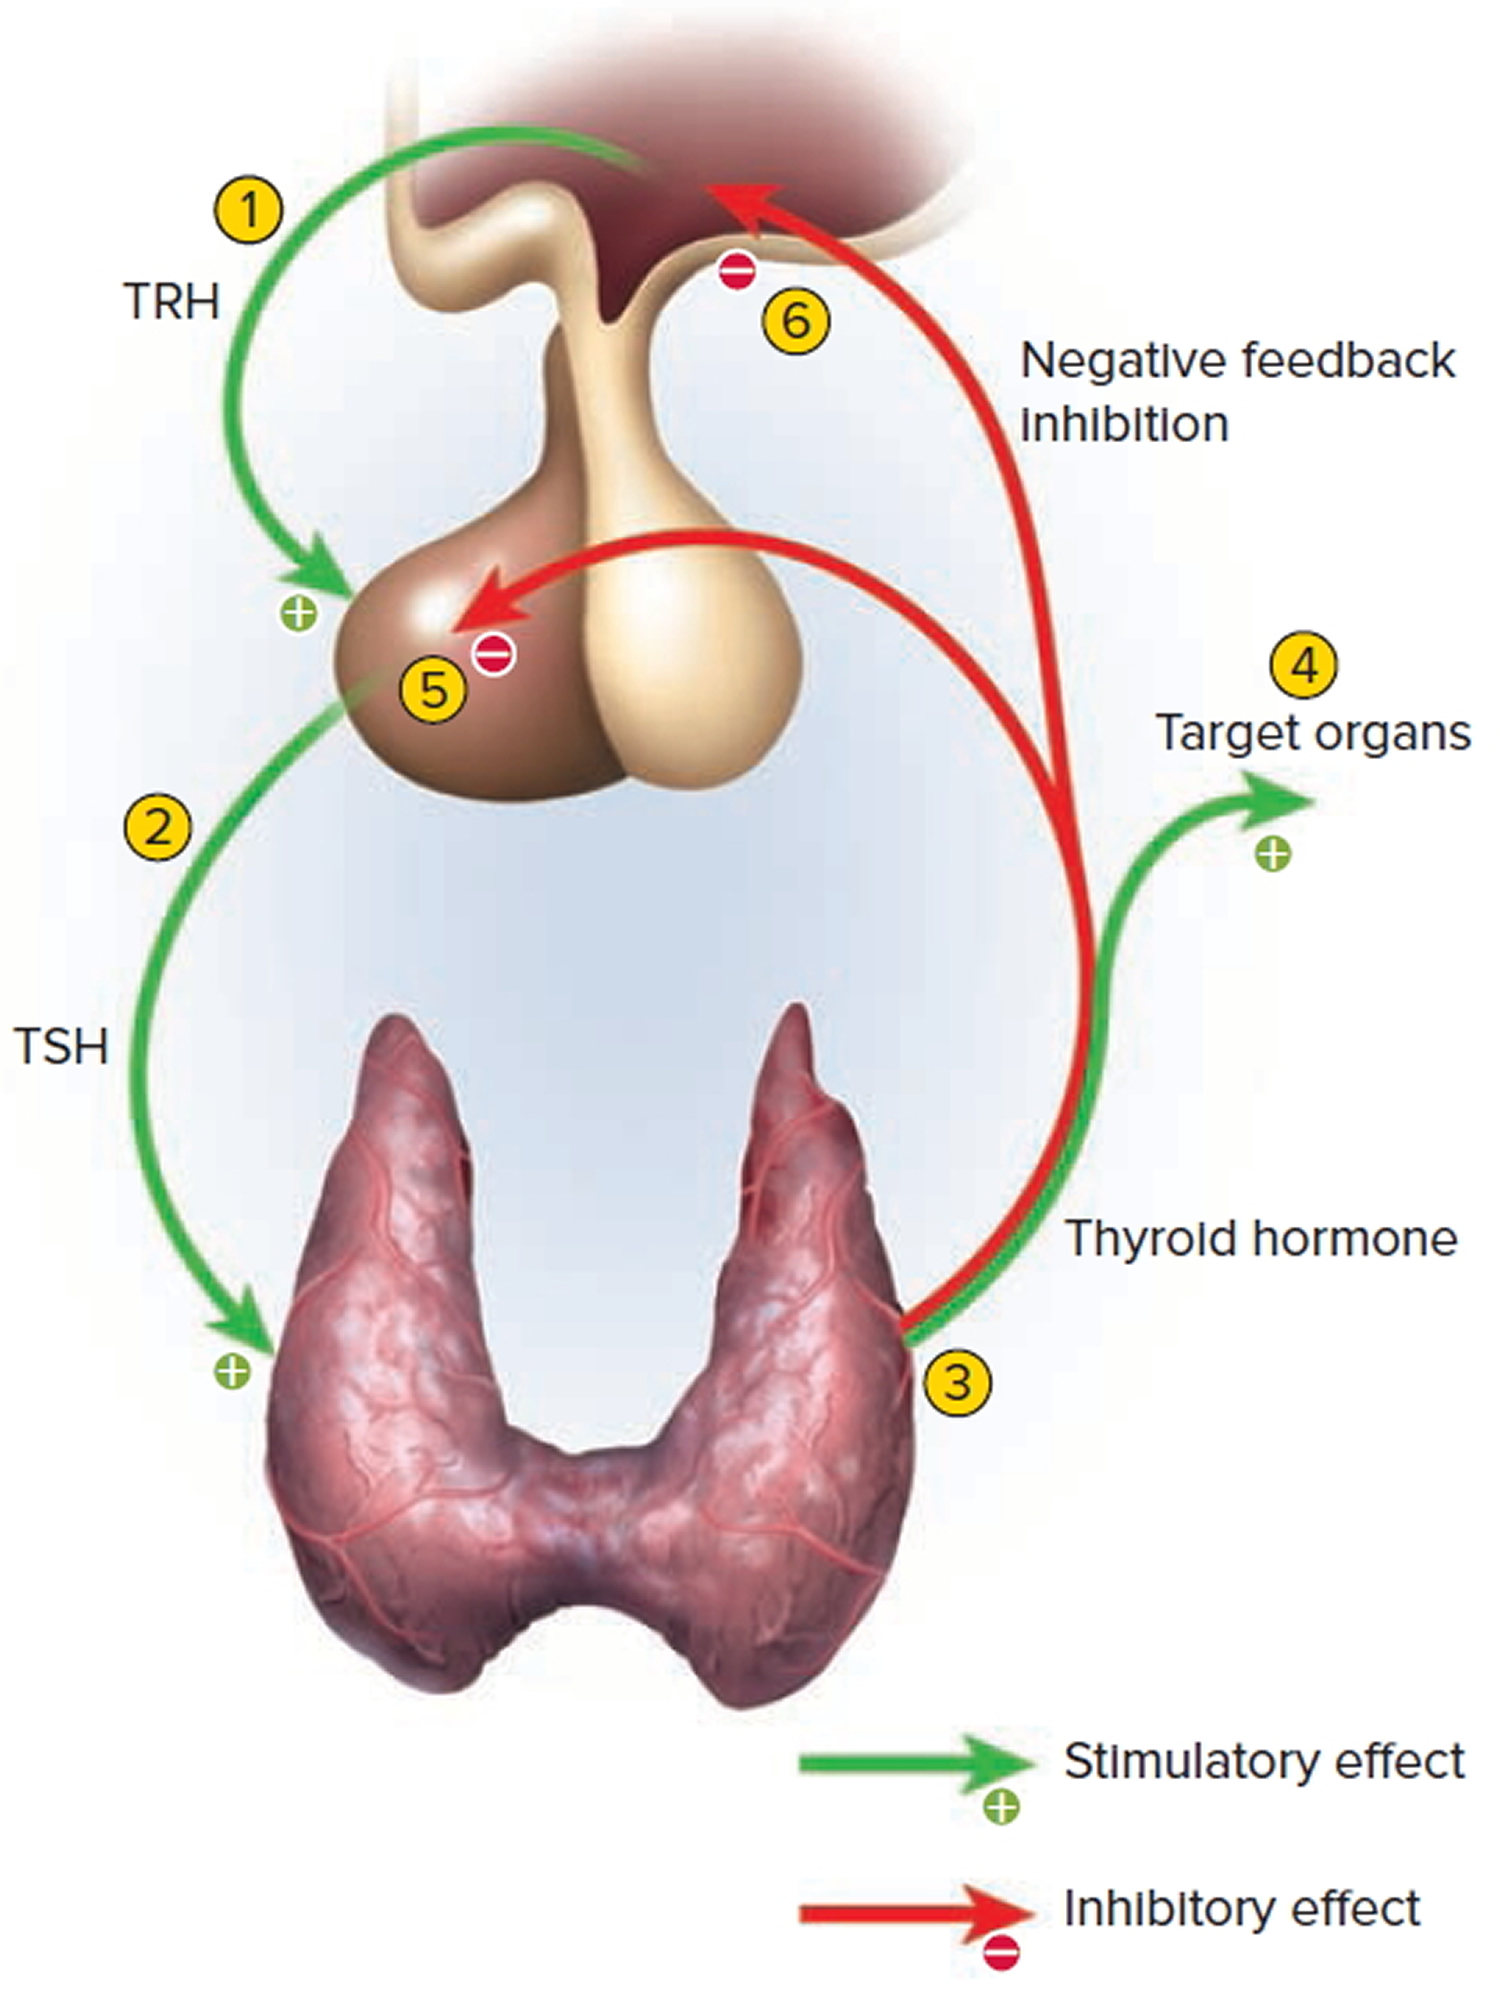 anterior pituitary and thyroid gland feedback mechanism